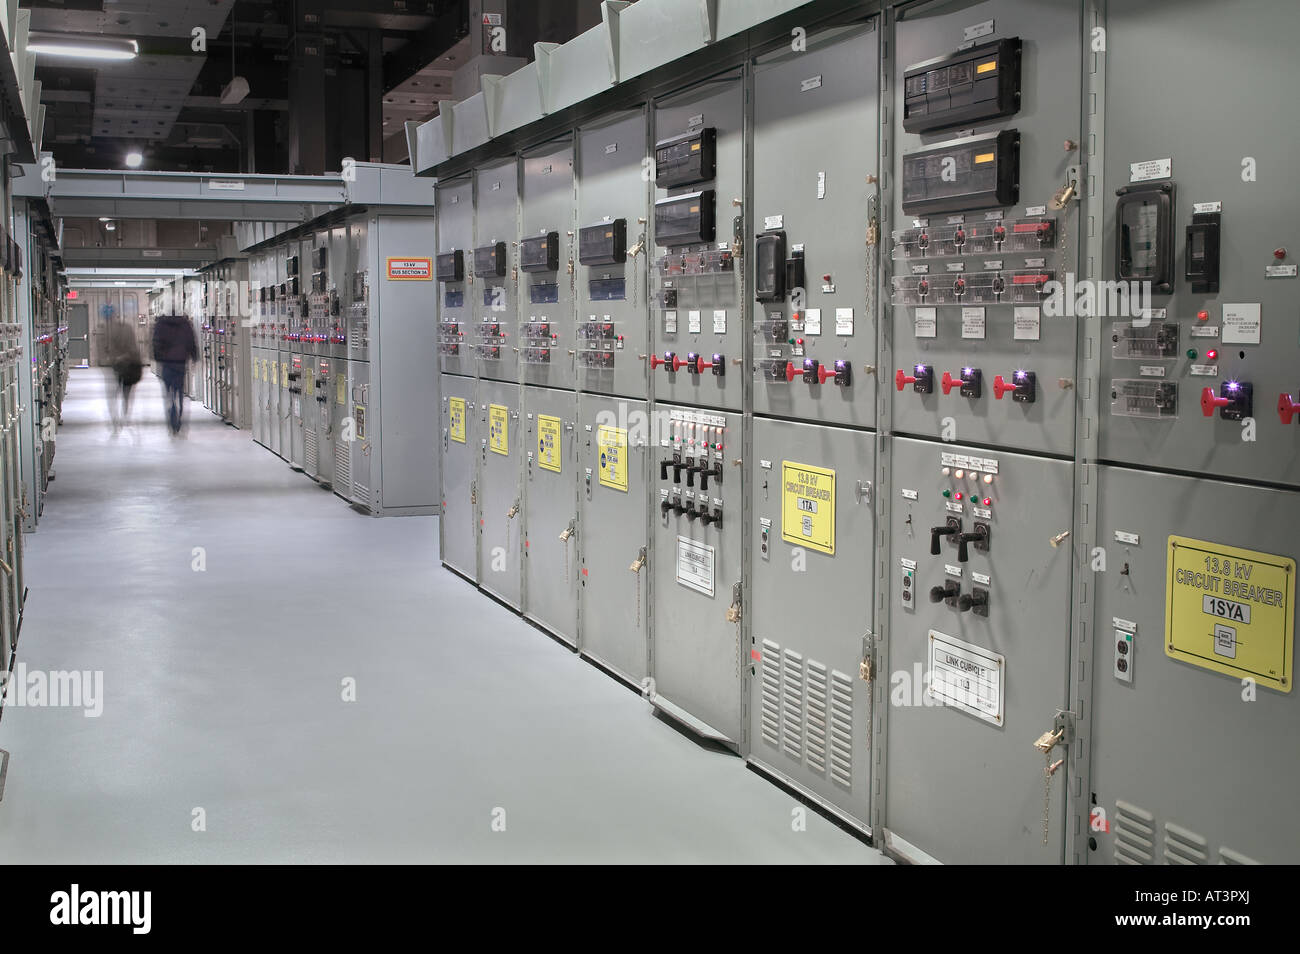 Electricity Power Plant SubStation Control Panel Stock Photo ...